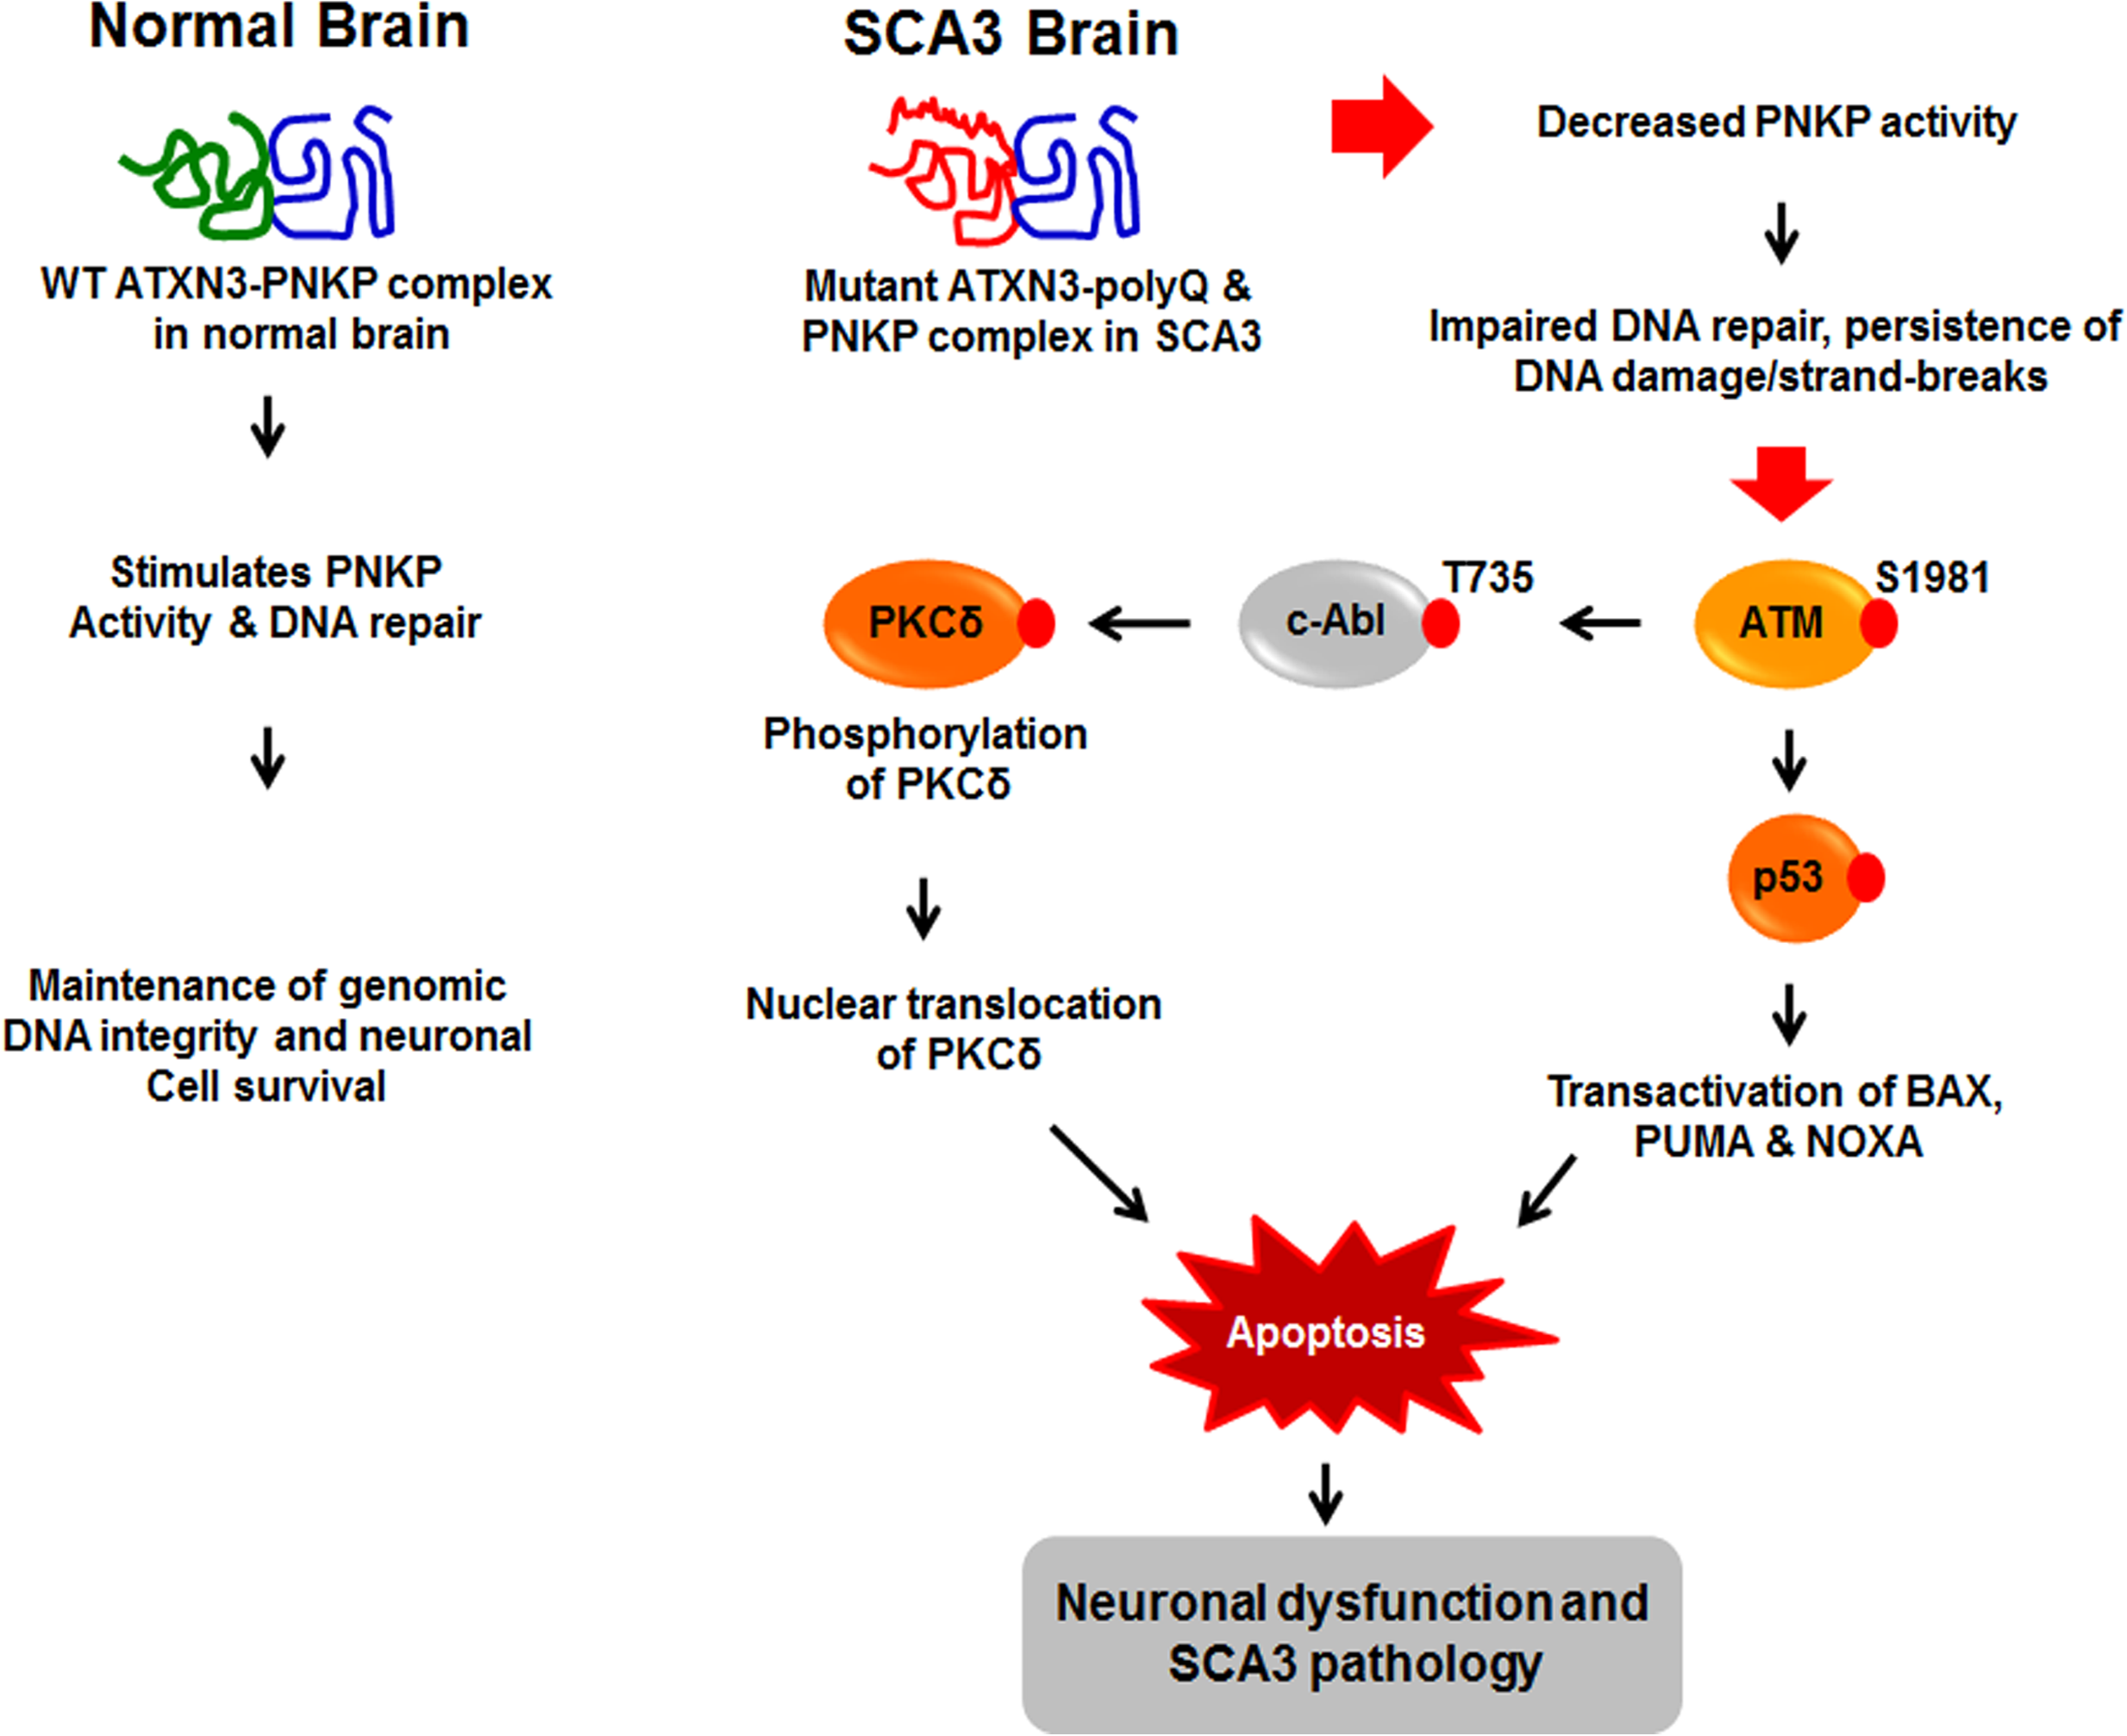 Proposed mechanism where interaction of PNKP with mutant expanded polyQ-containing ATXN3 abrogates PNKP's 3'-phosphatase activity.